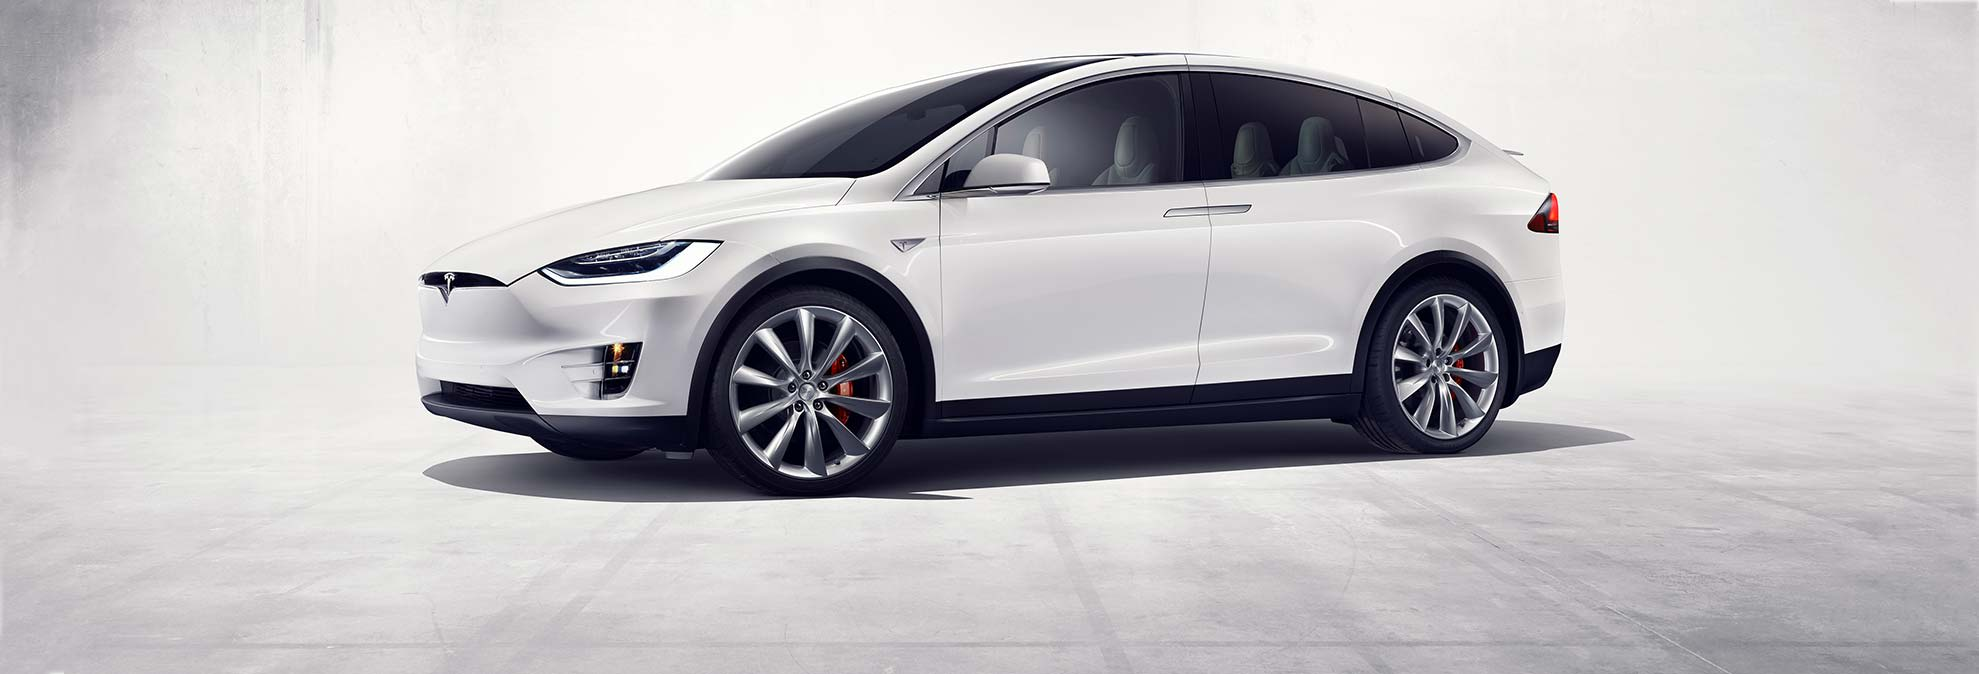 Tesla recalls 11 000 model x vehicles over seats that could fly forward